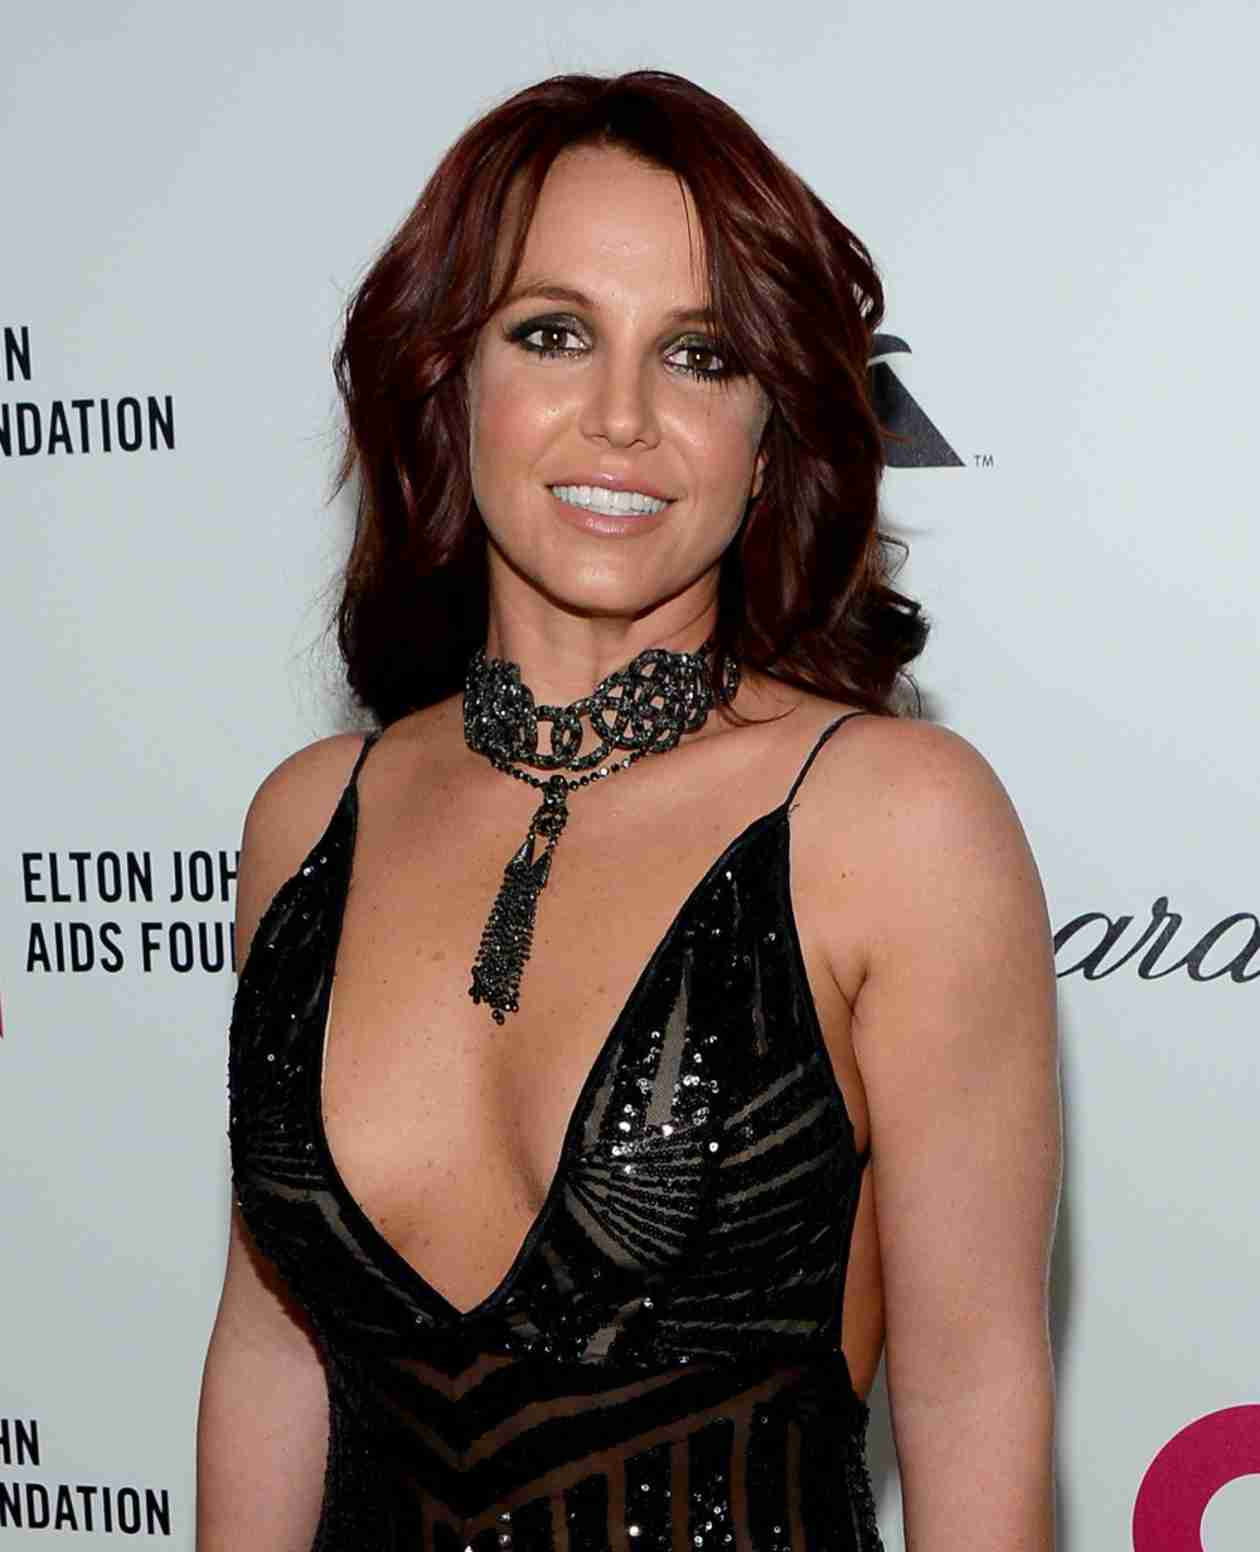 Britney Spears Shows Off Her Bikini Body in Hawaii (PHOTO)